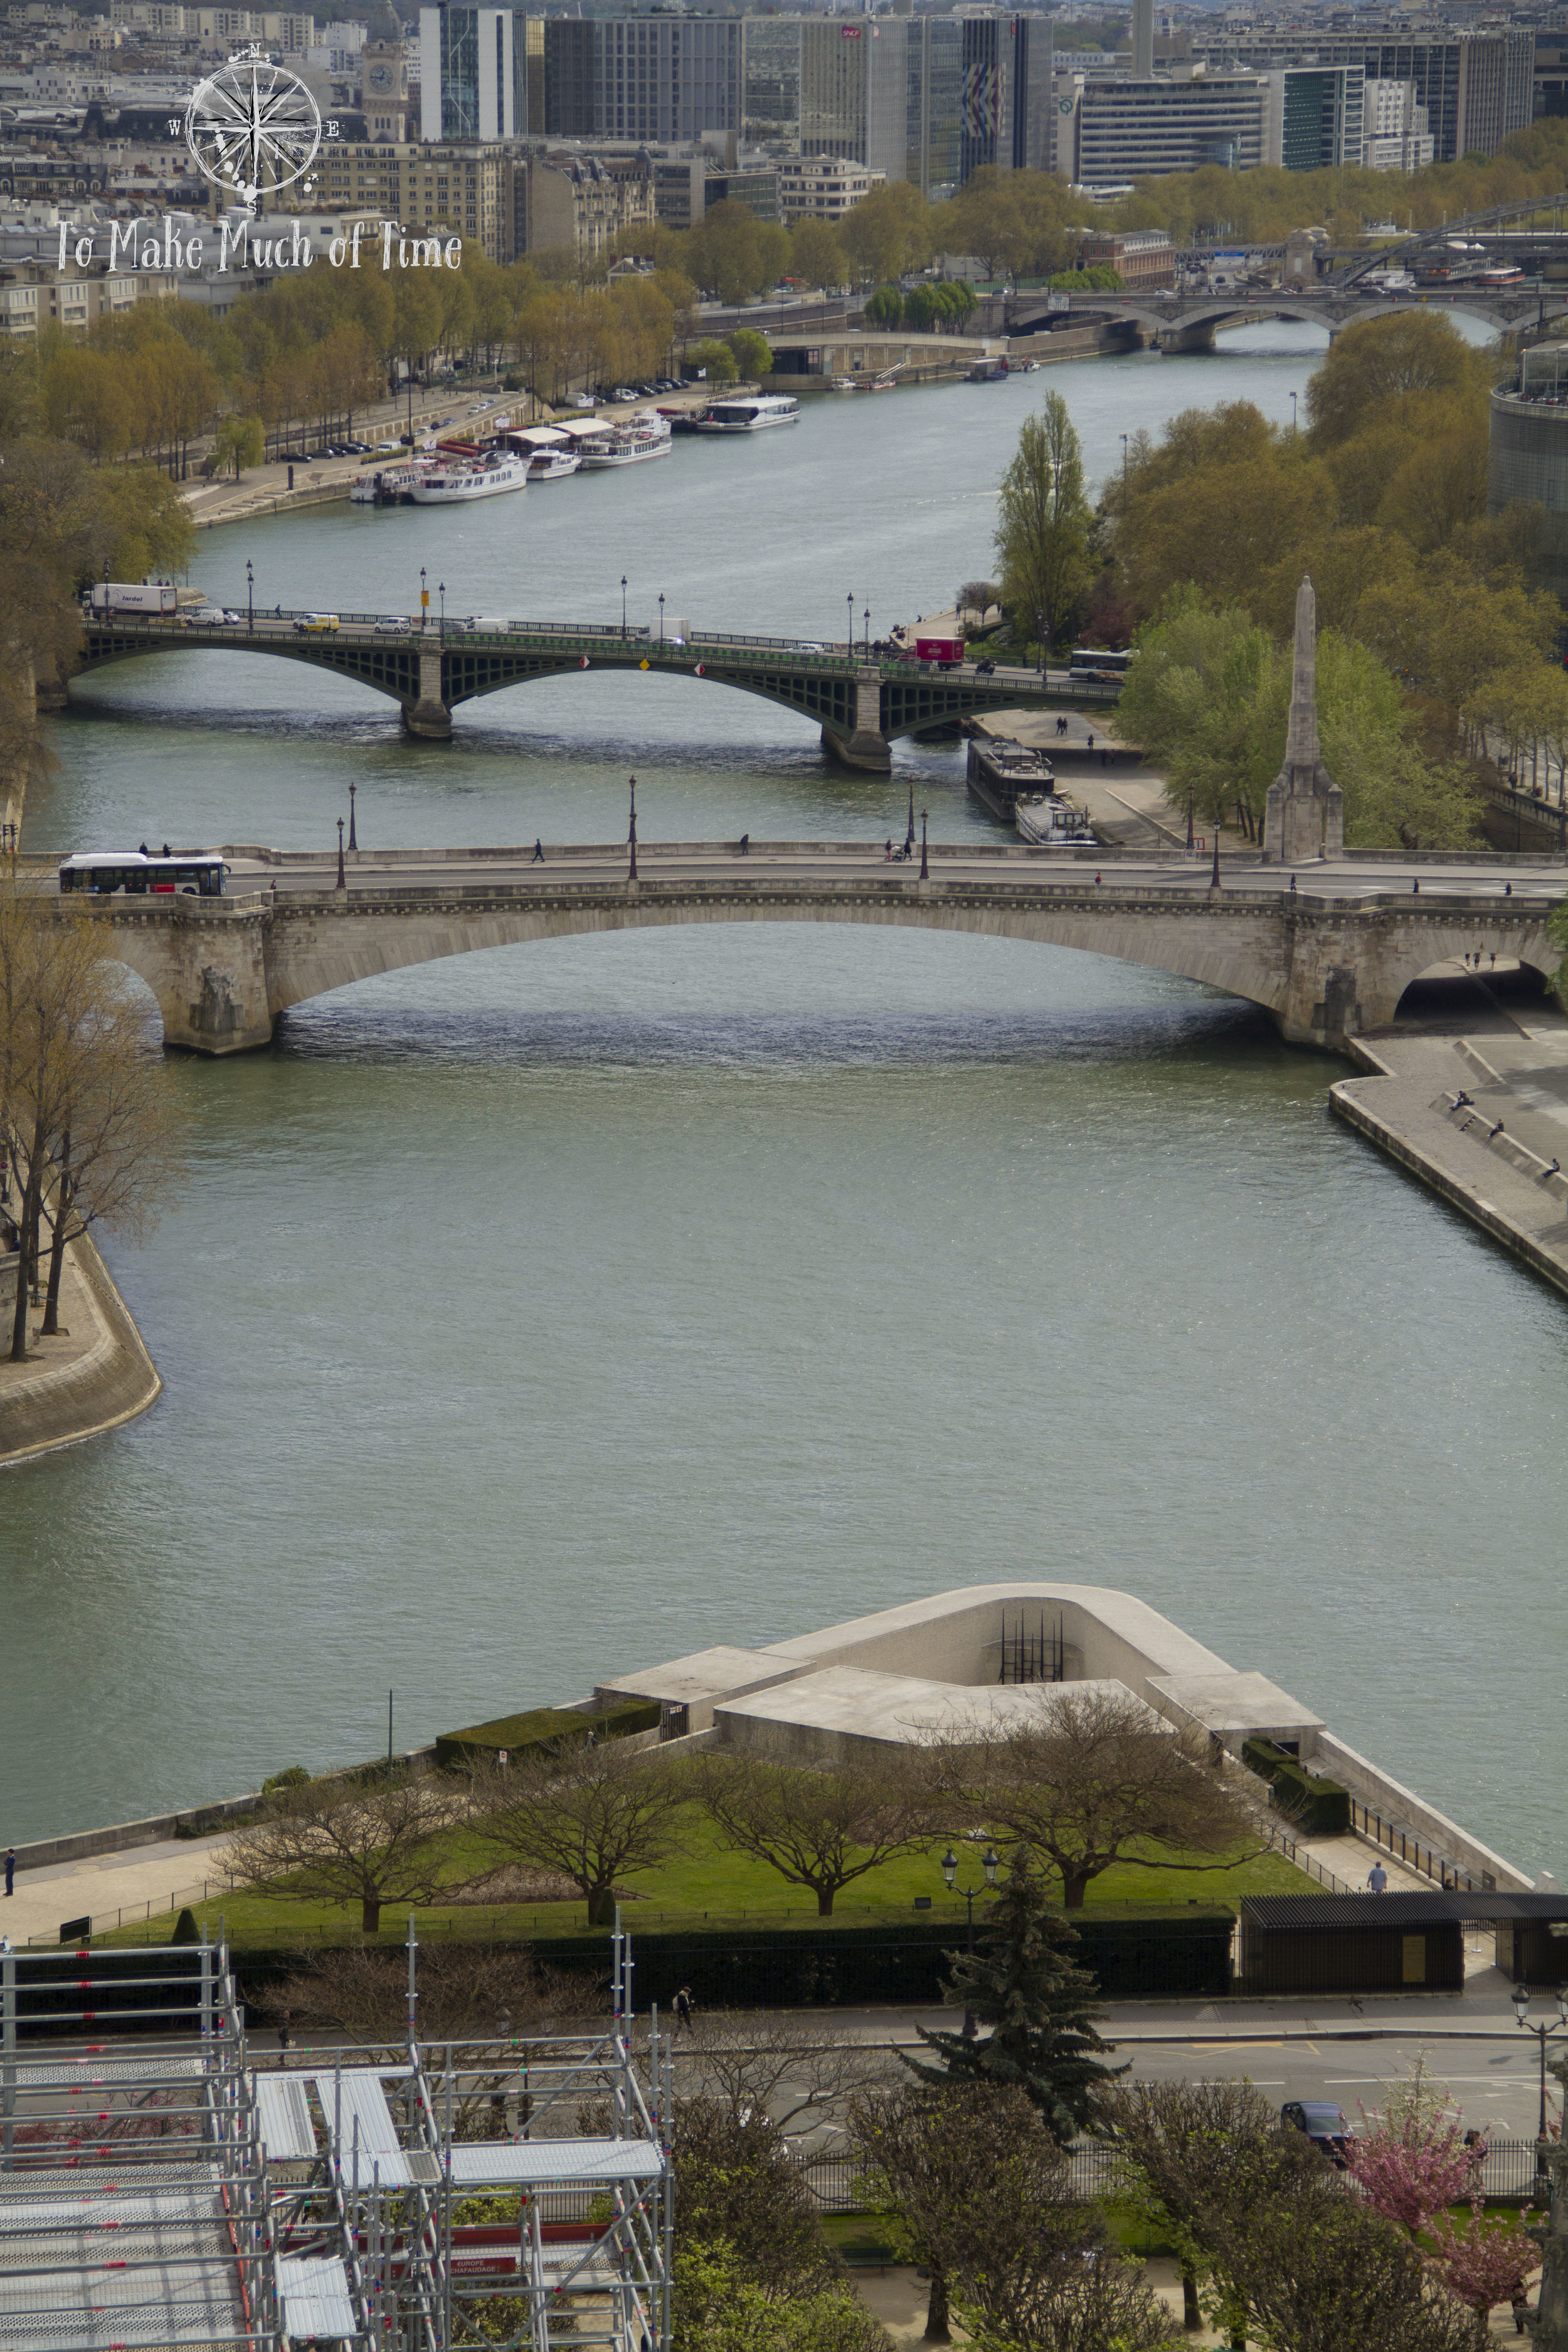 Look down from the top of Notre-Dame and see the Seine far below.